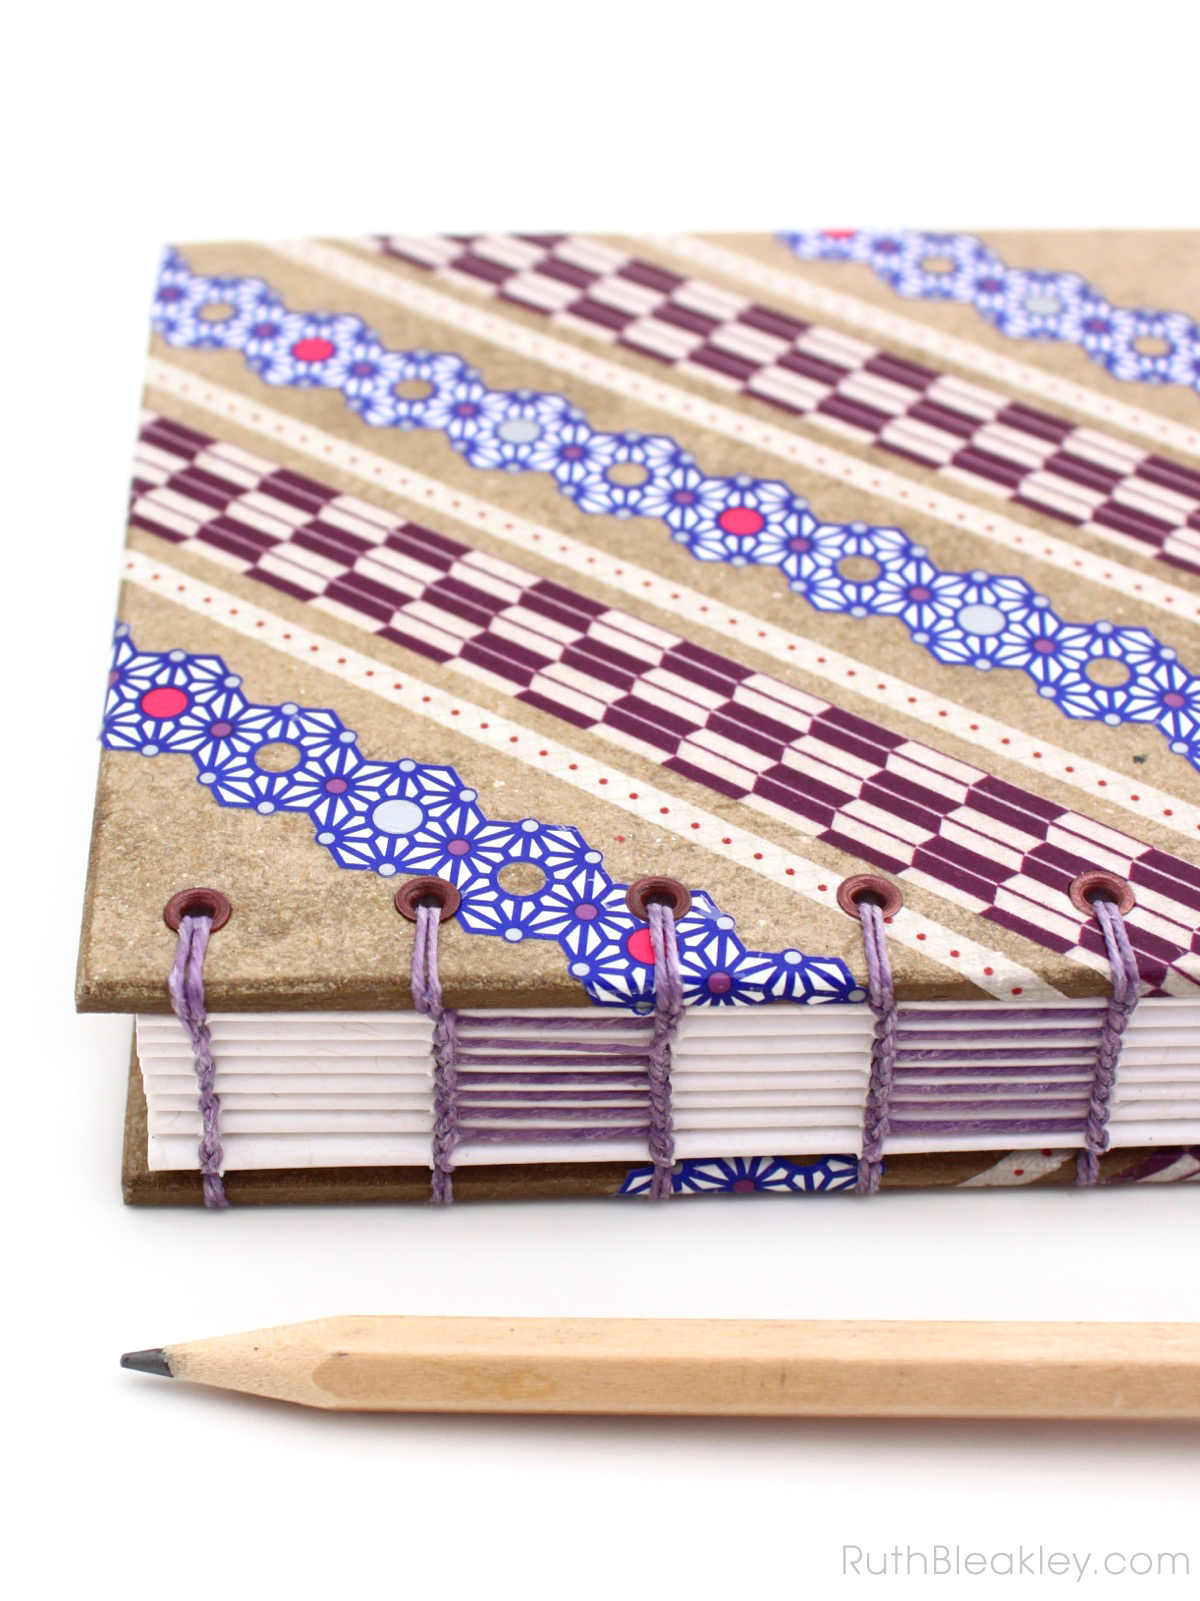 Purple and Blue Lace Washi Tape Journal handmade by Ruth Bleakley - 3